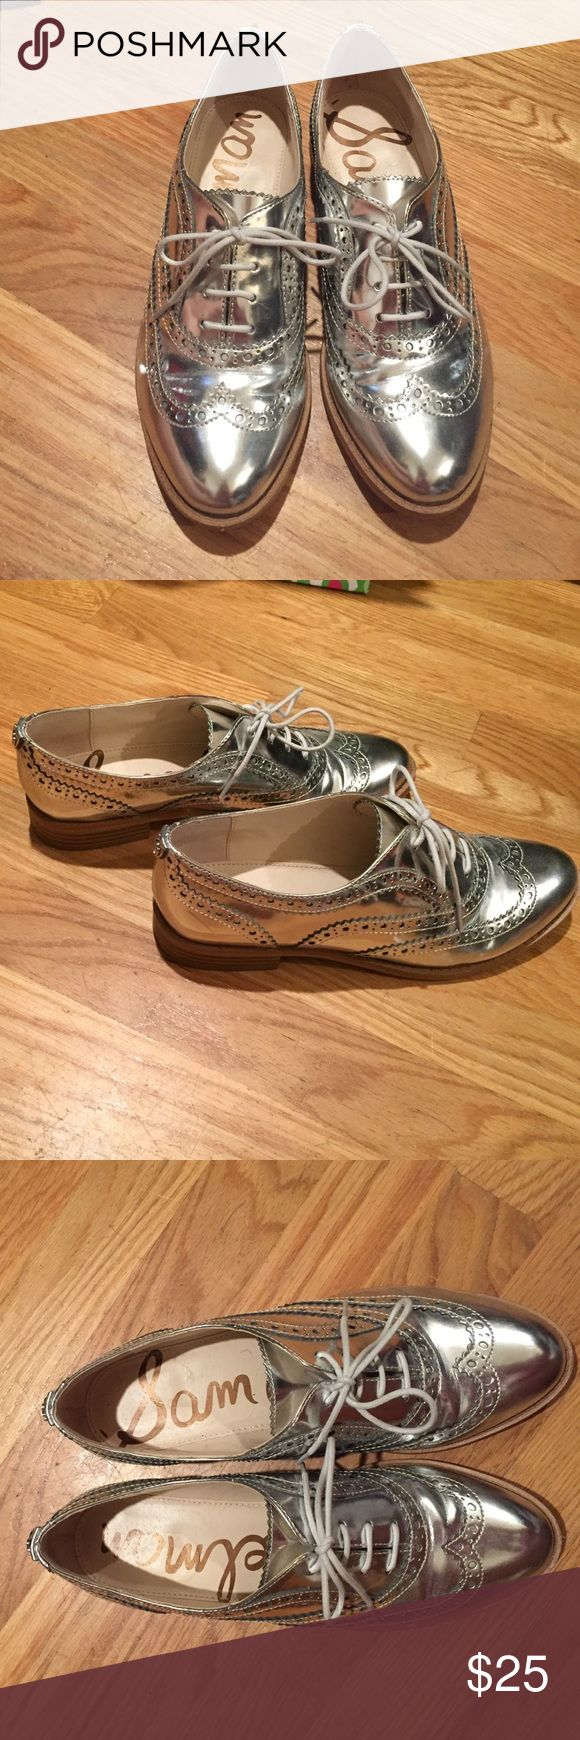 Sam Edelman silver Oxford shoes Worn only a few times, like new silver Oxfords from Sam Edelman Sam Edelman Shoes Flats & Loafers